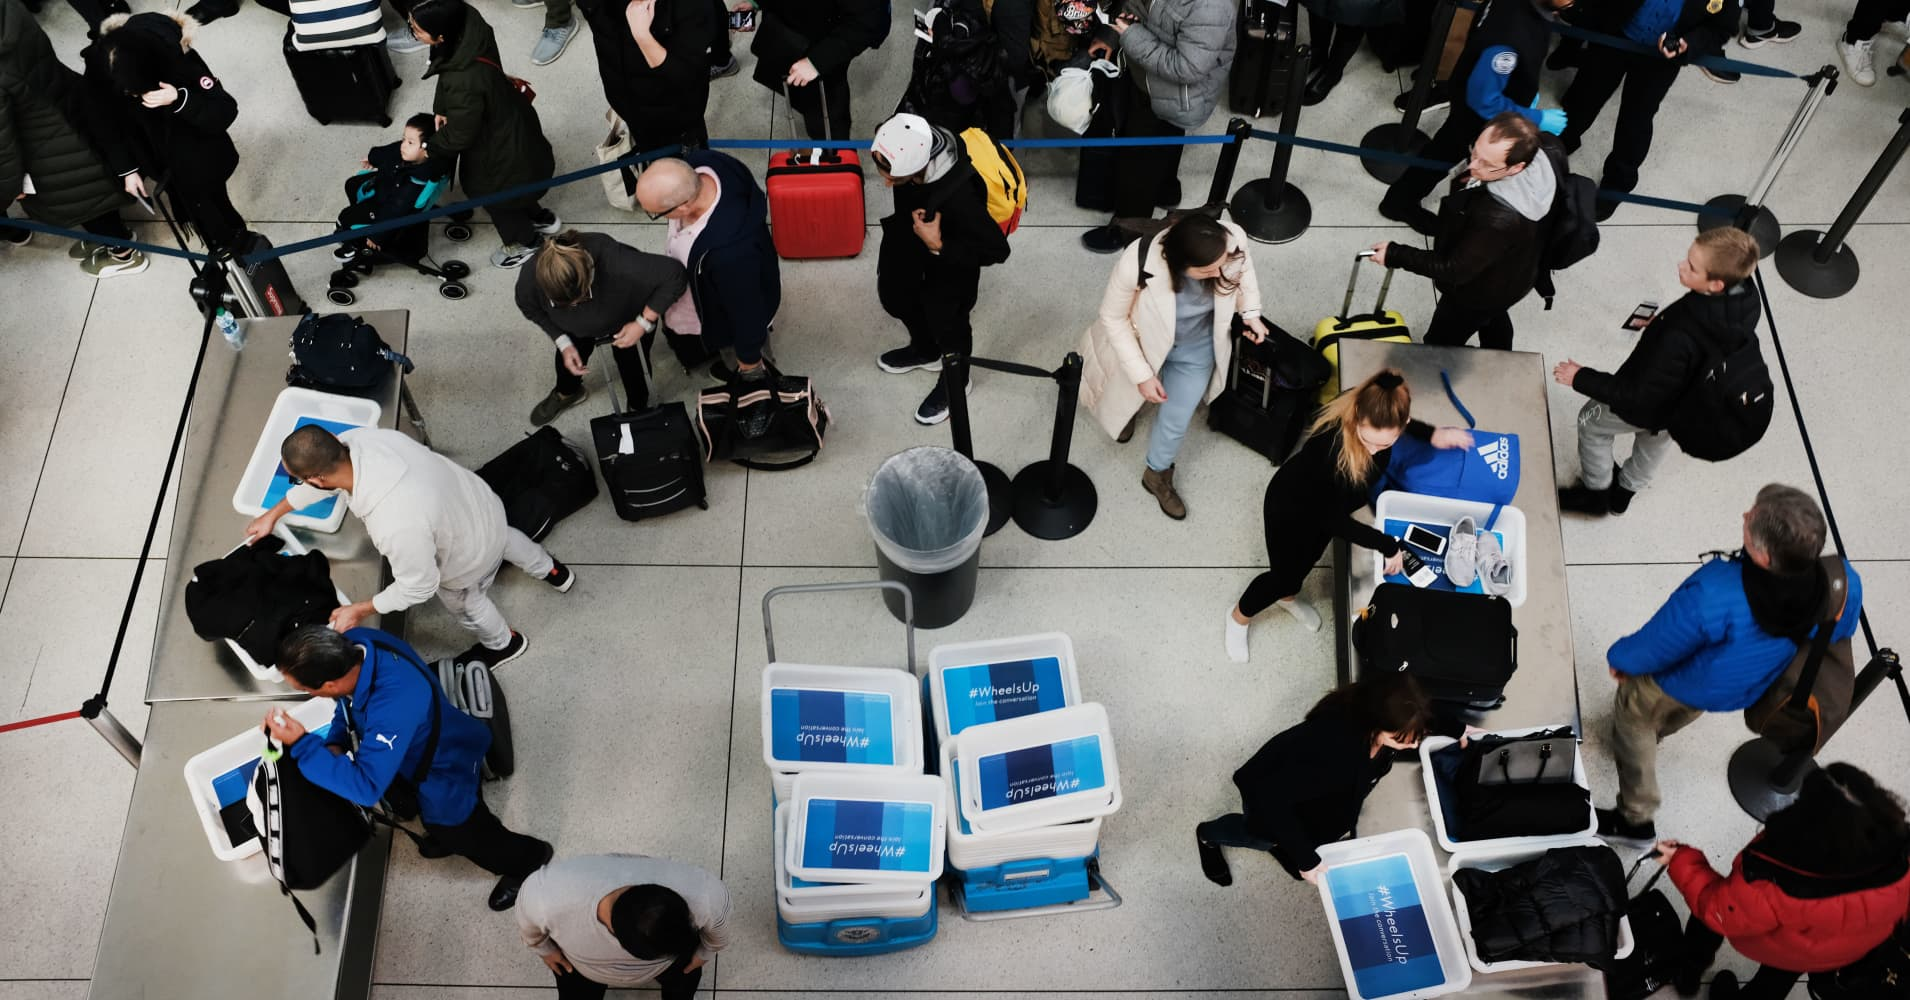 Government shutdown: TSA officers call in sick, Miami closes terminal